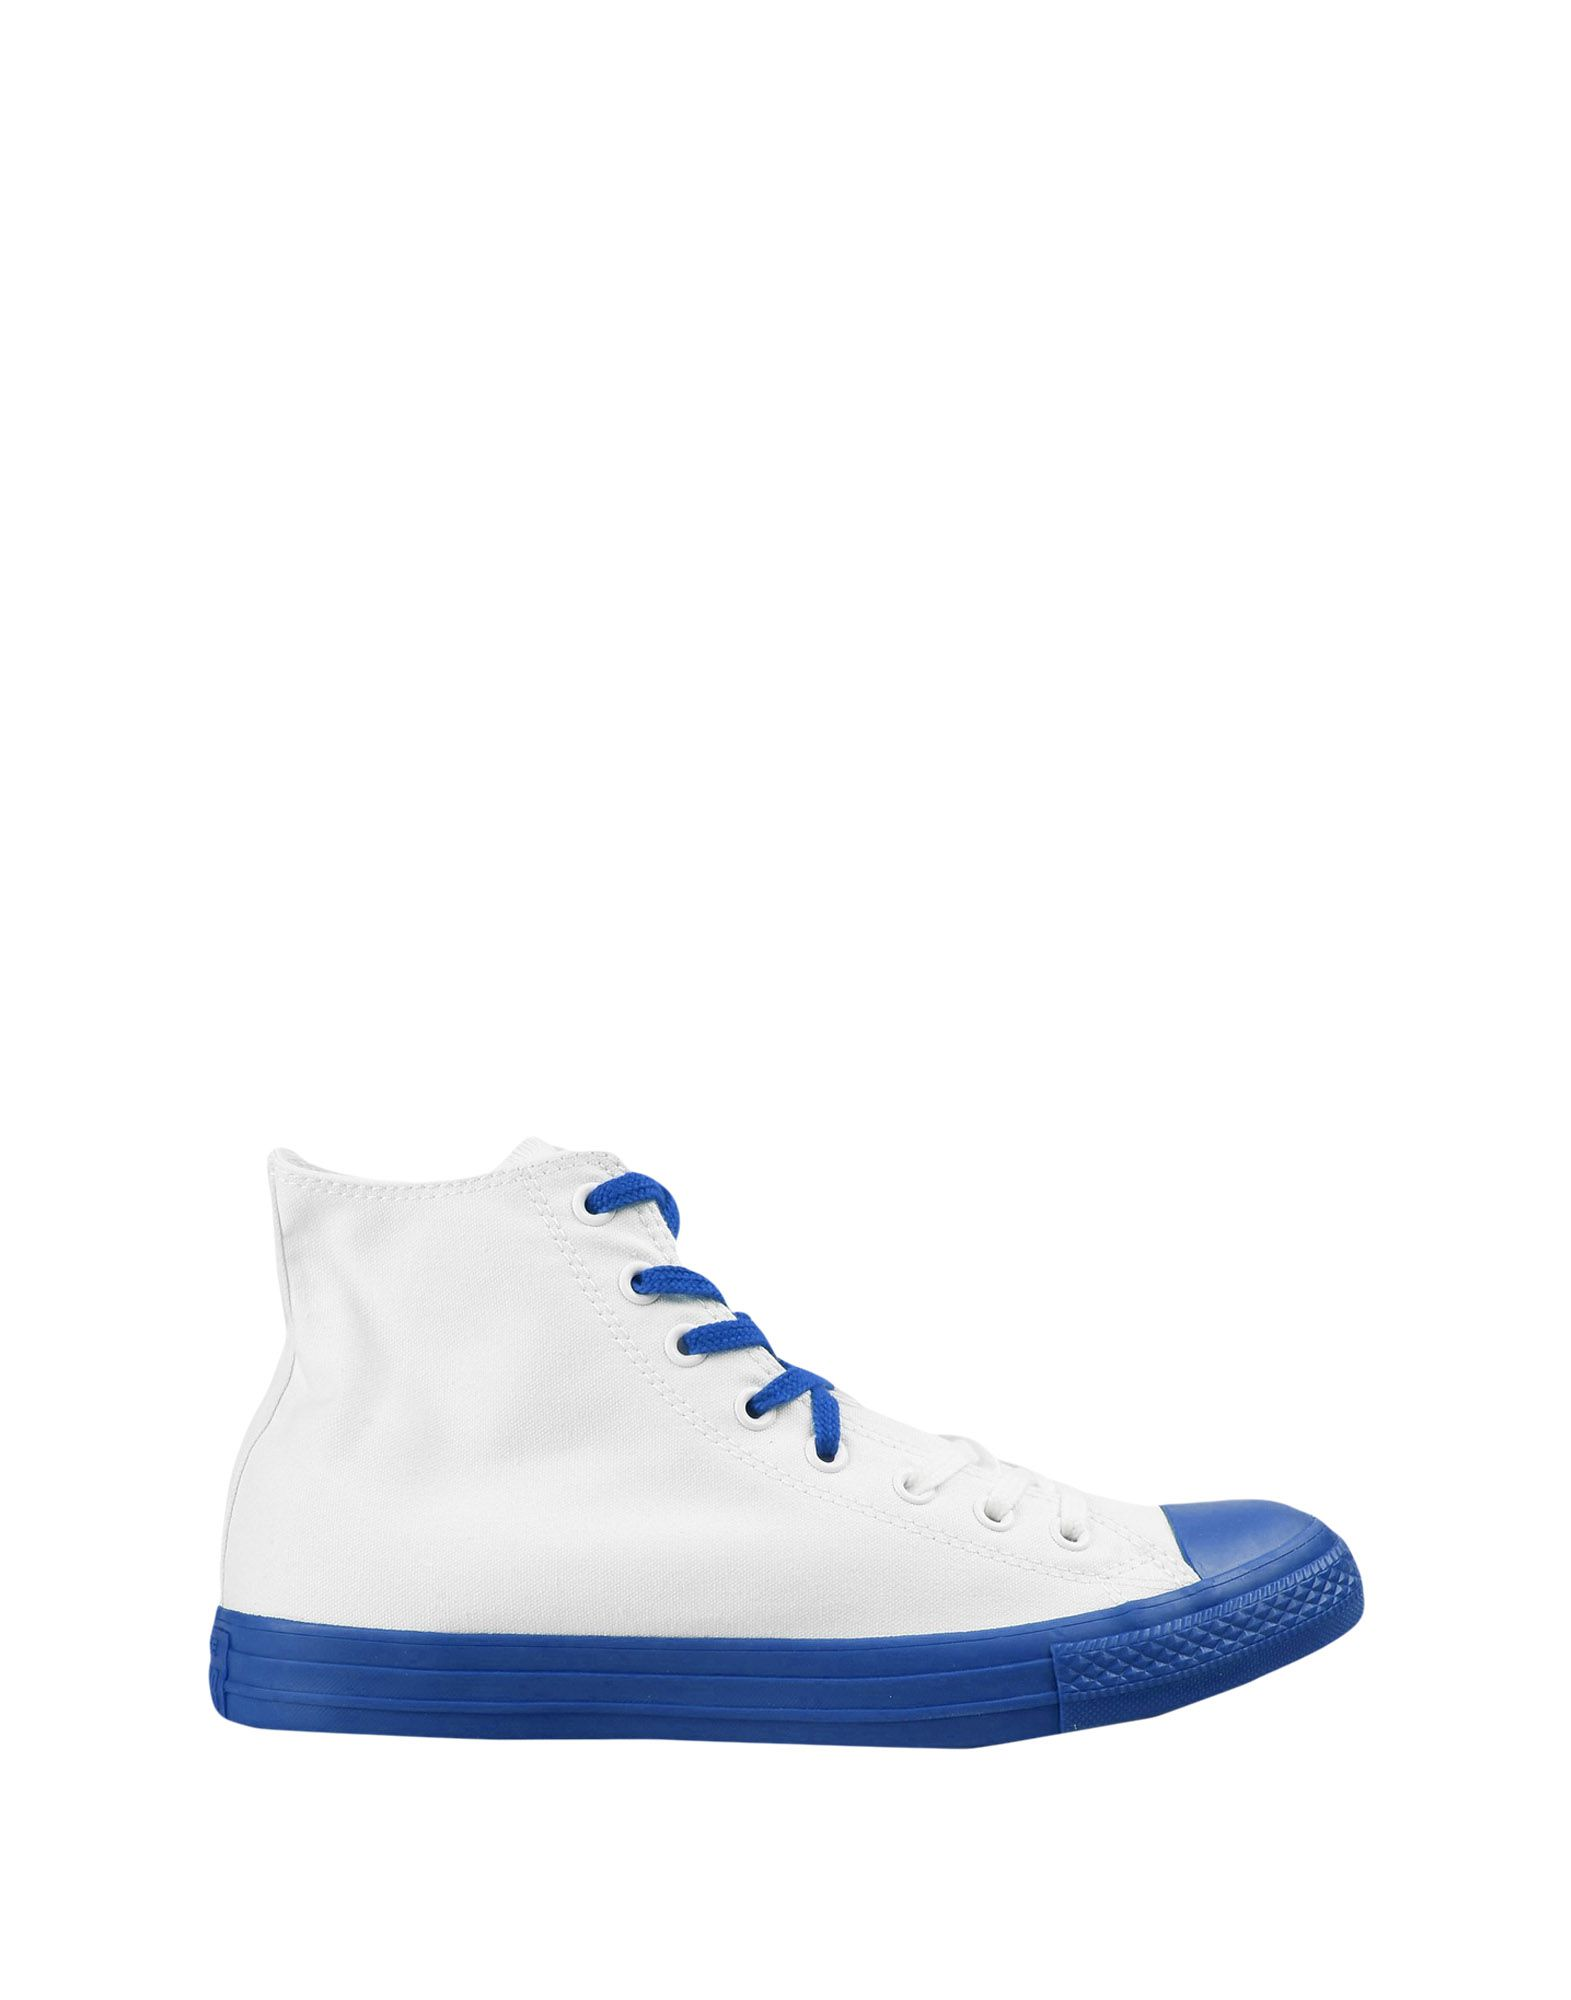 Rabatt Star echte Schuhe Converse All Star Rabatt Ct As Hi Canvas Farbe Rubber  11247734WR f7ebc4